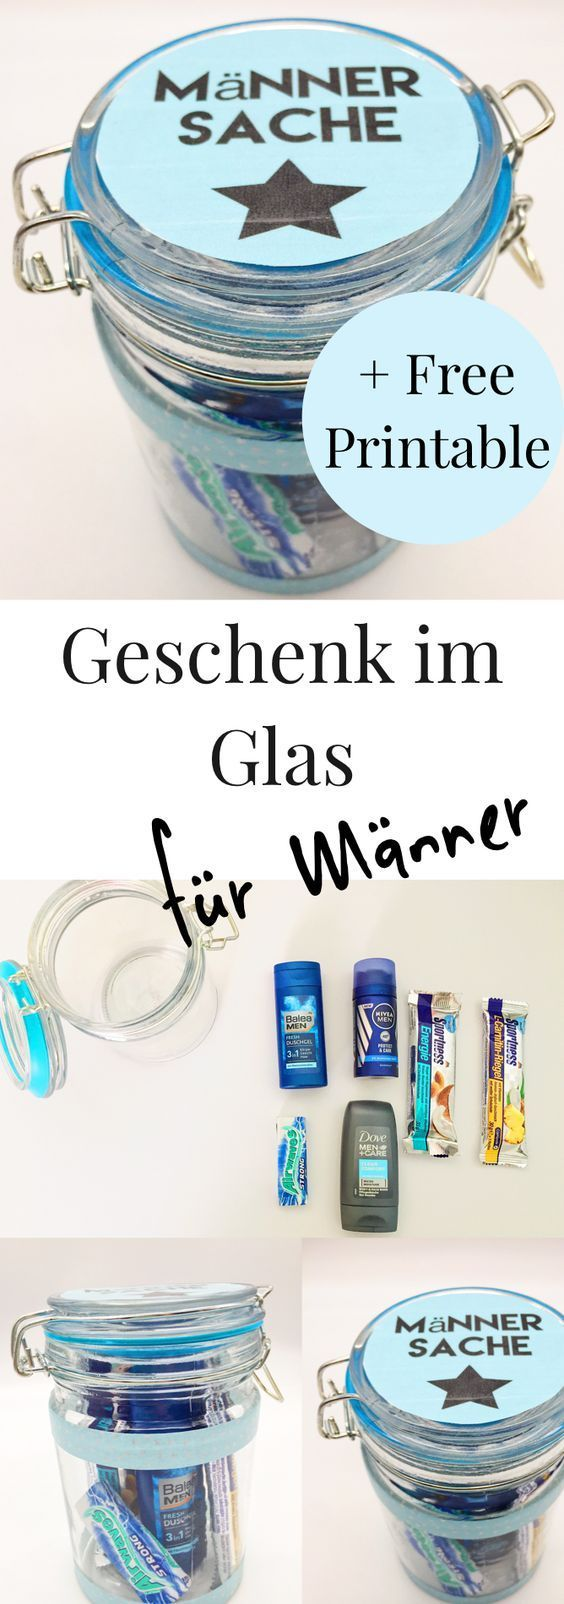 63 best Geschenke images on Pinterest | Diaries, Gift wrapping and Glass